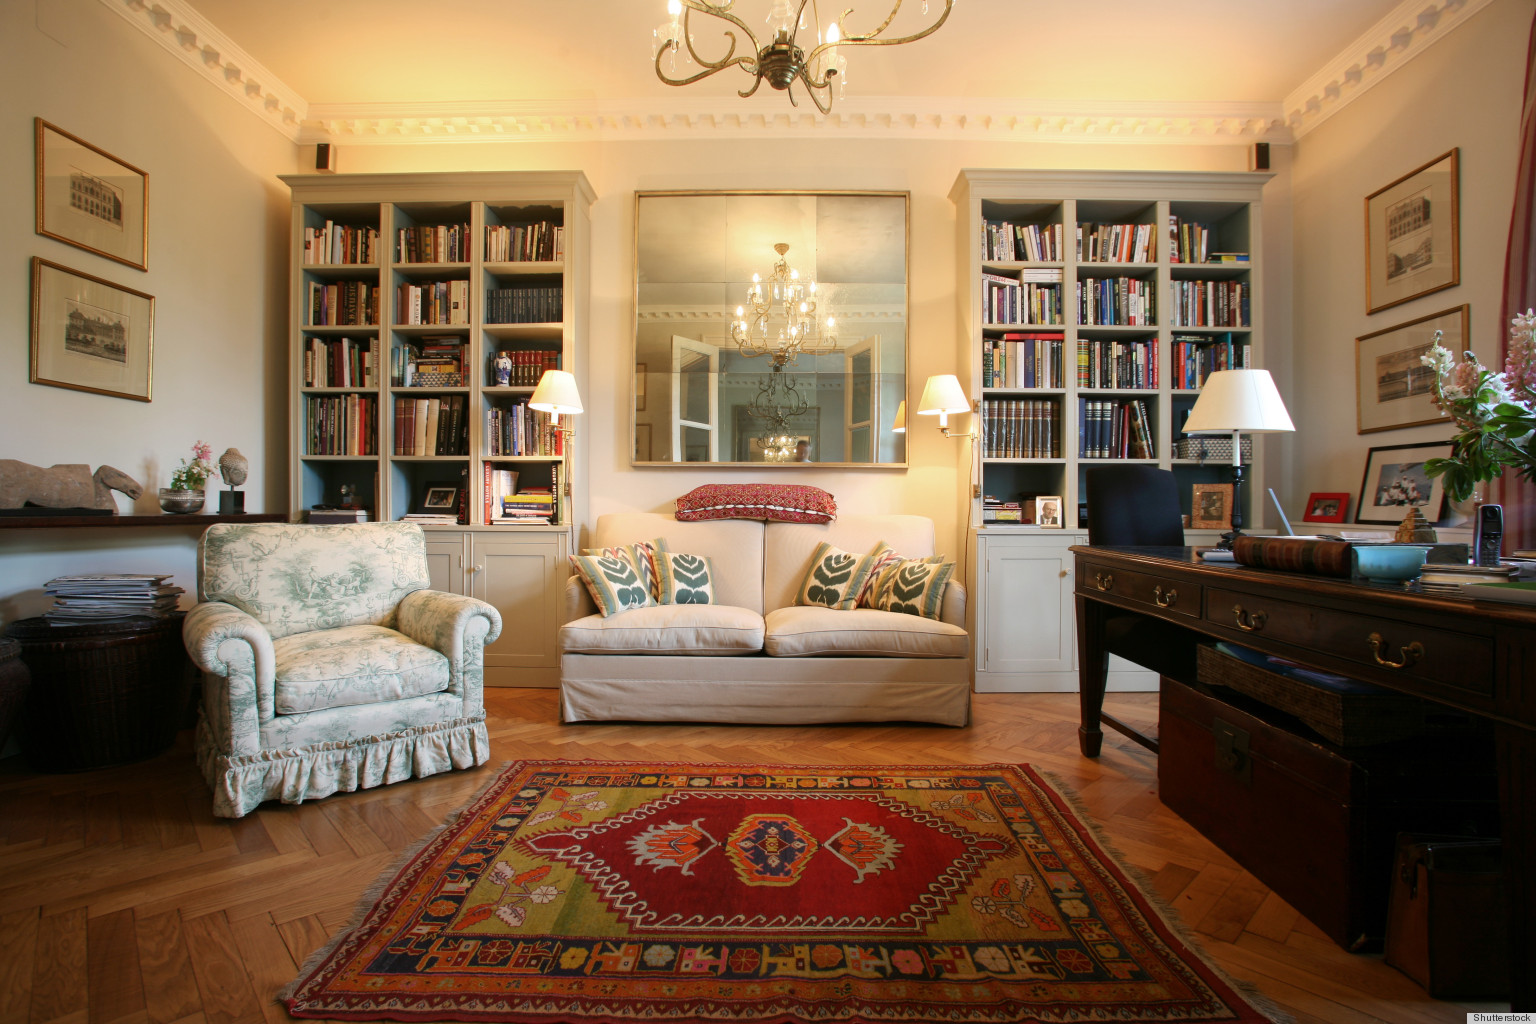 How Decorating With Books Personalizes A Home Elaine Steiner